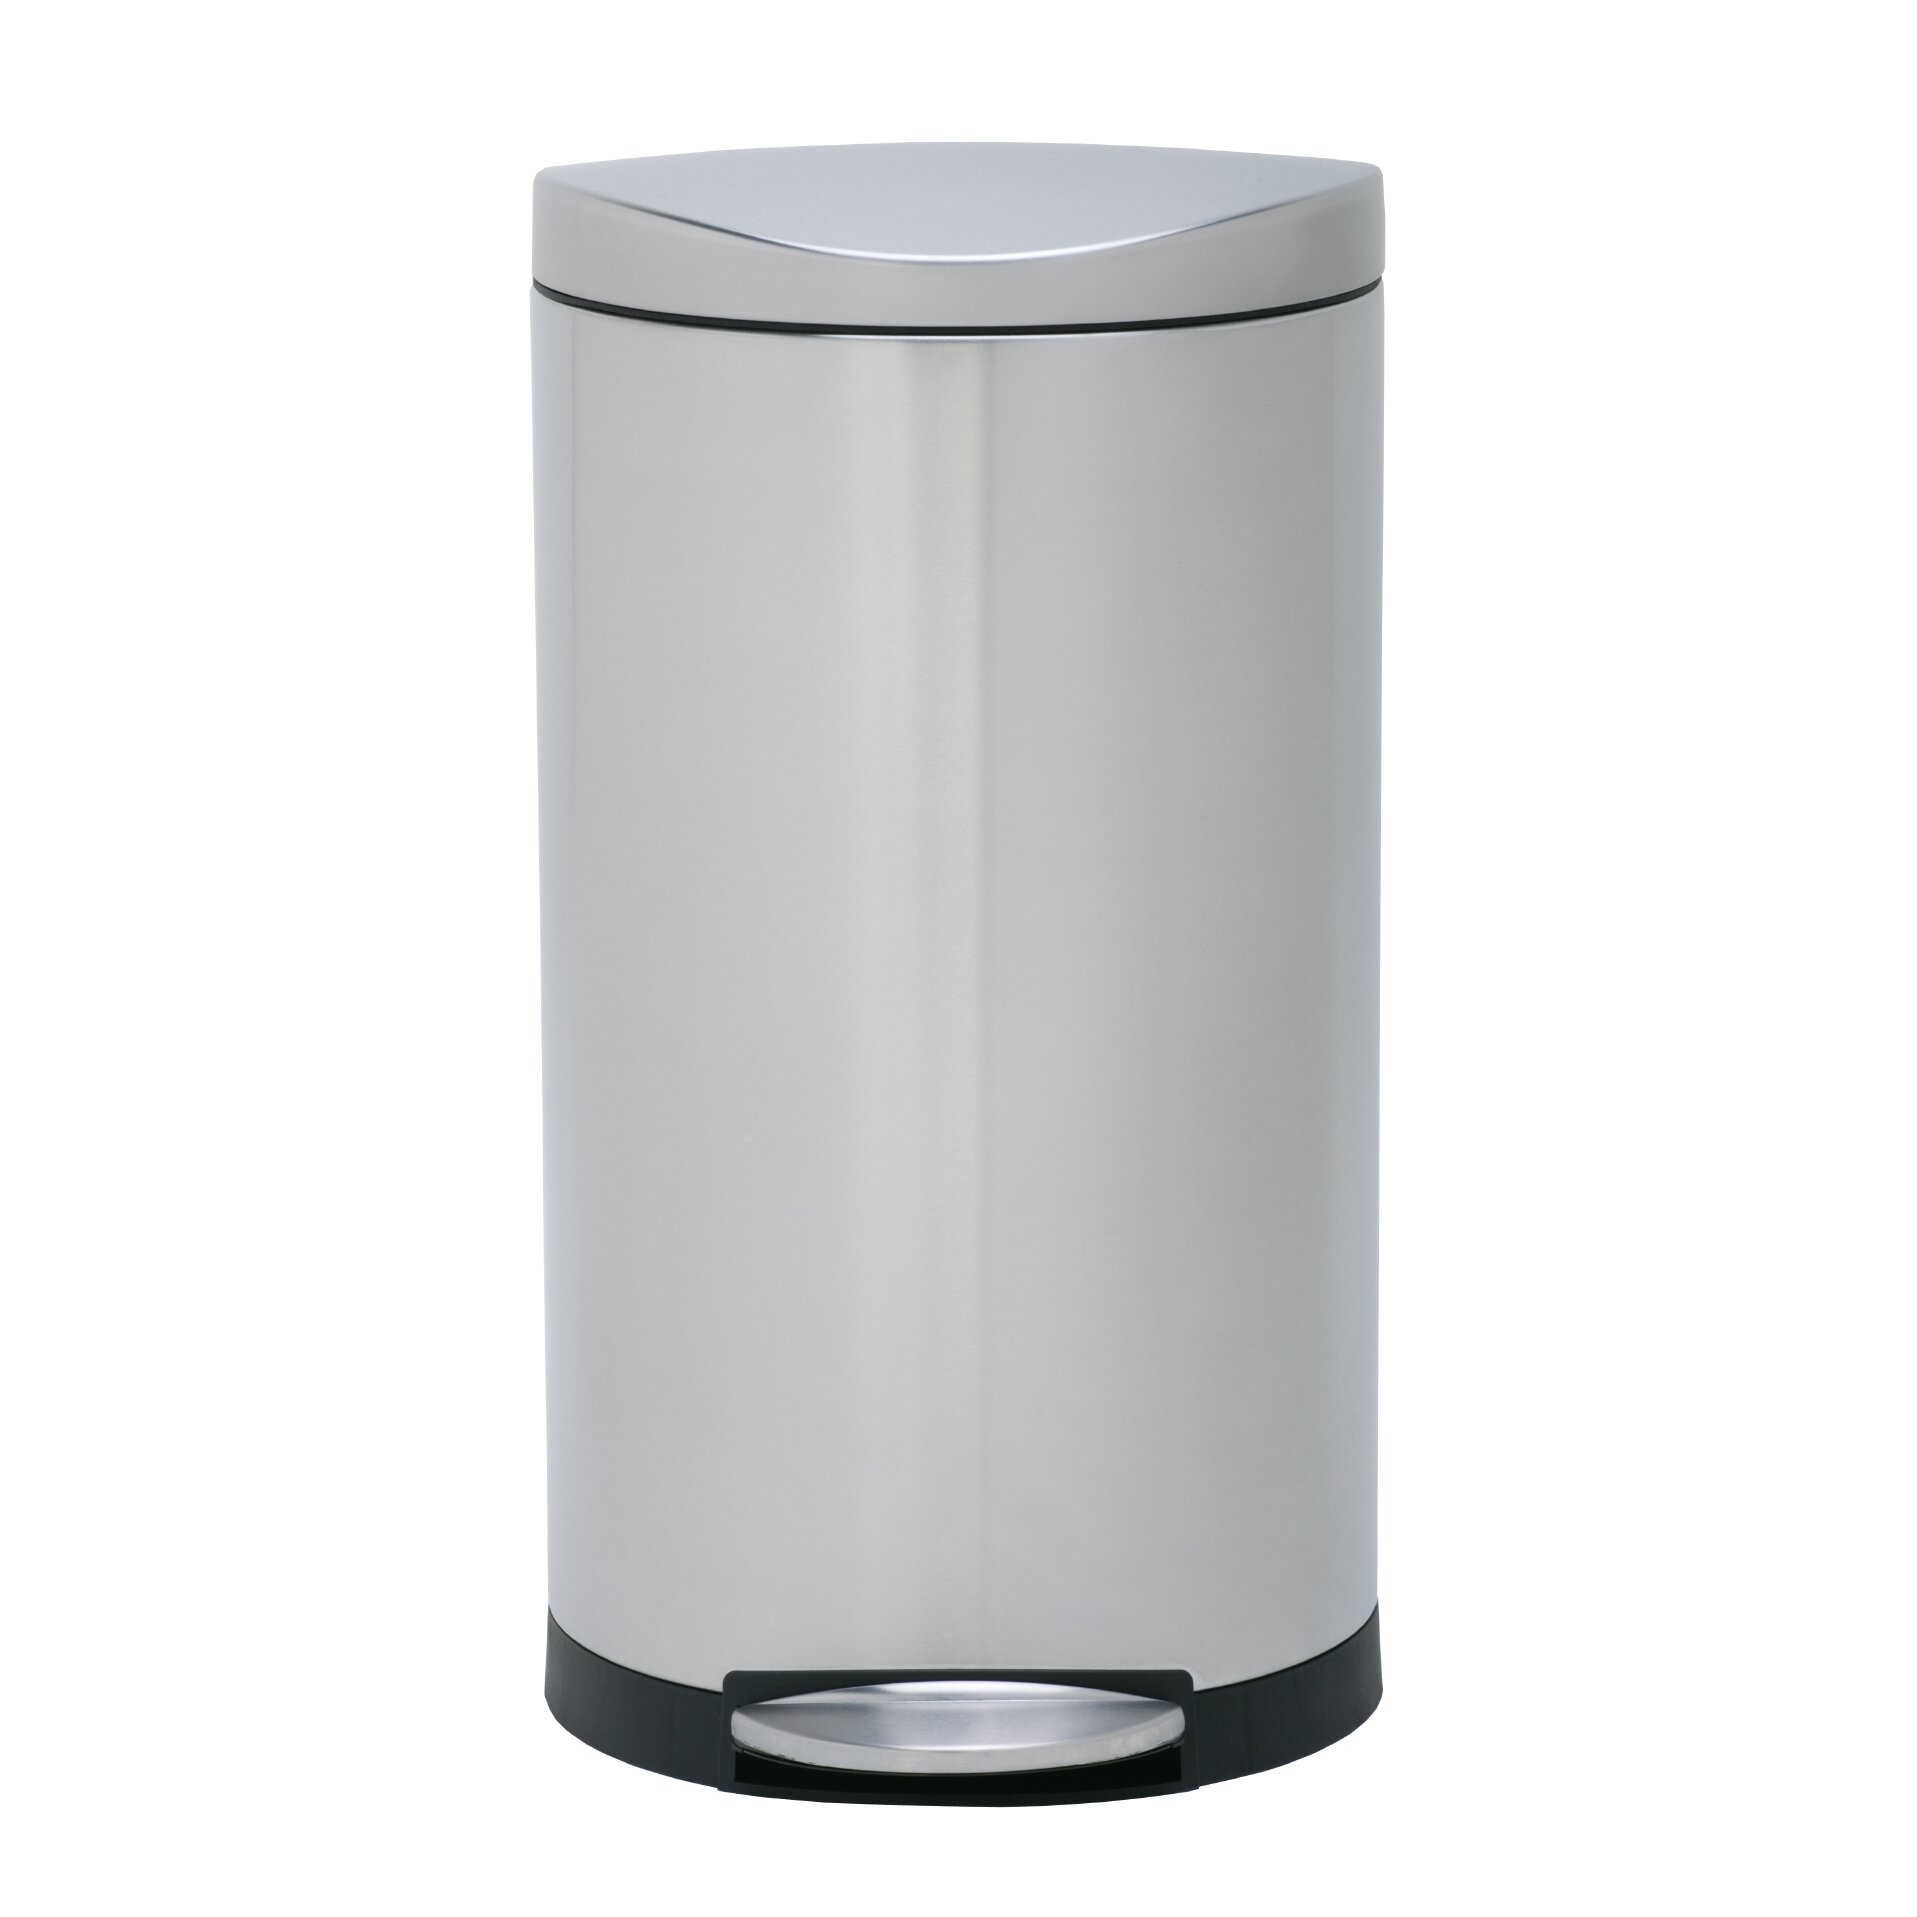 simplehuman 7 9 Gallon Step On Stainless Steel Trash Can. simplehuman 7 9 Gallon Step On Stainless Steel Trash Can   Reviews